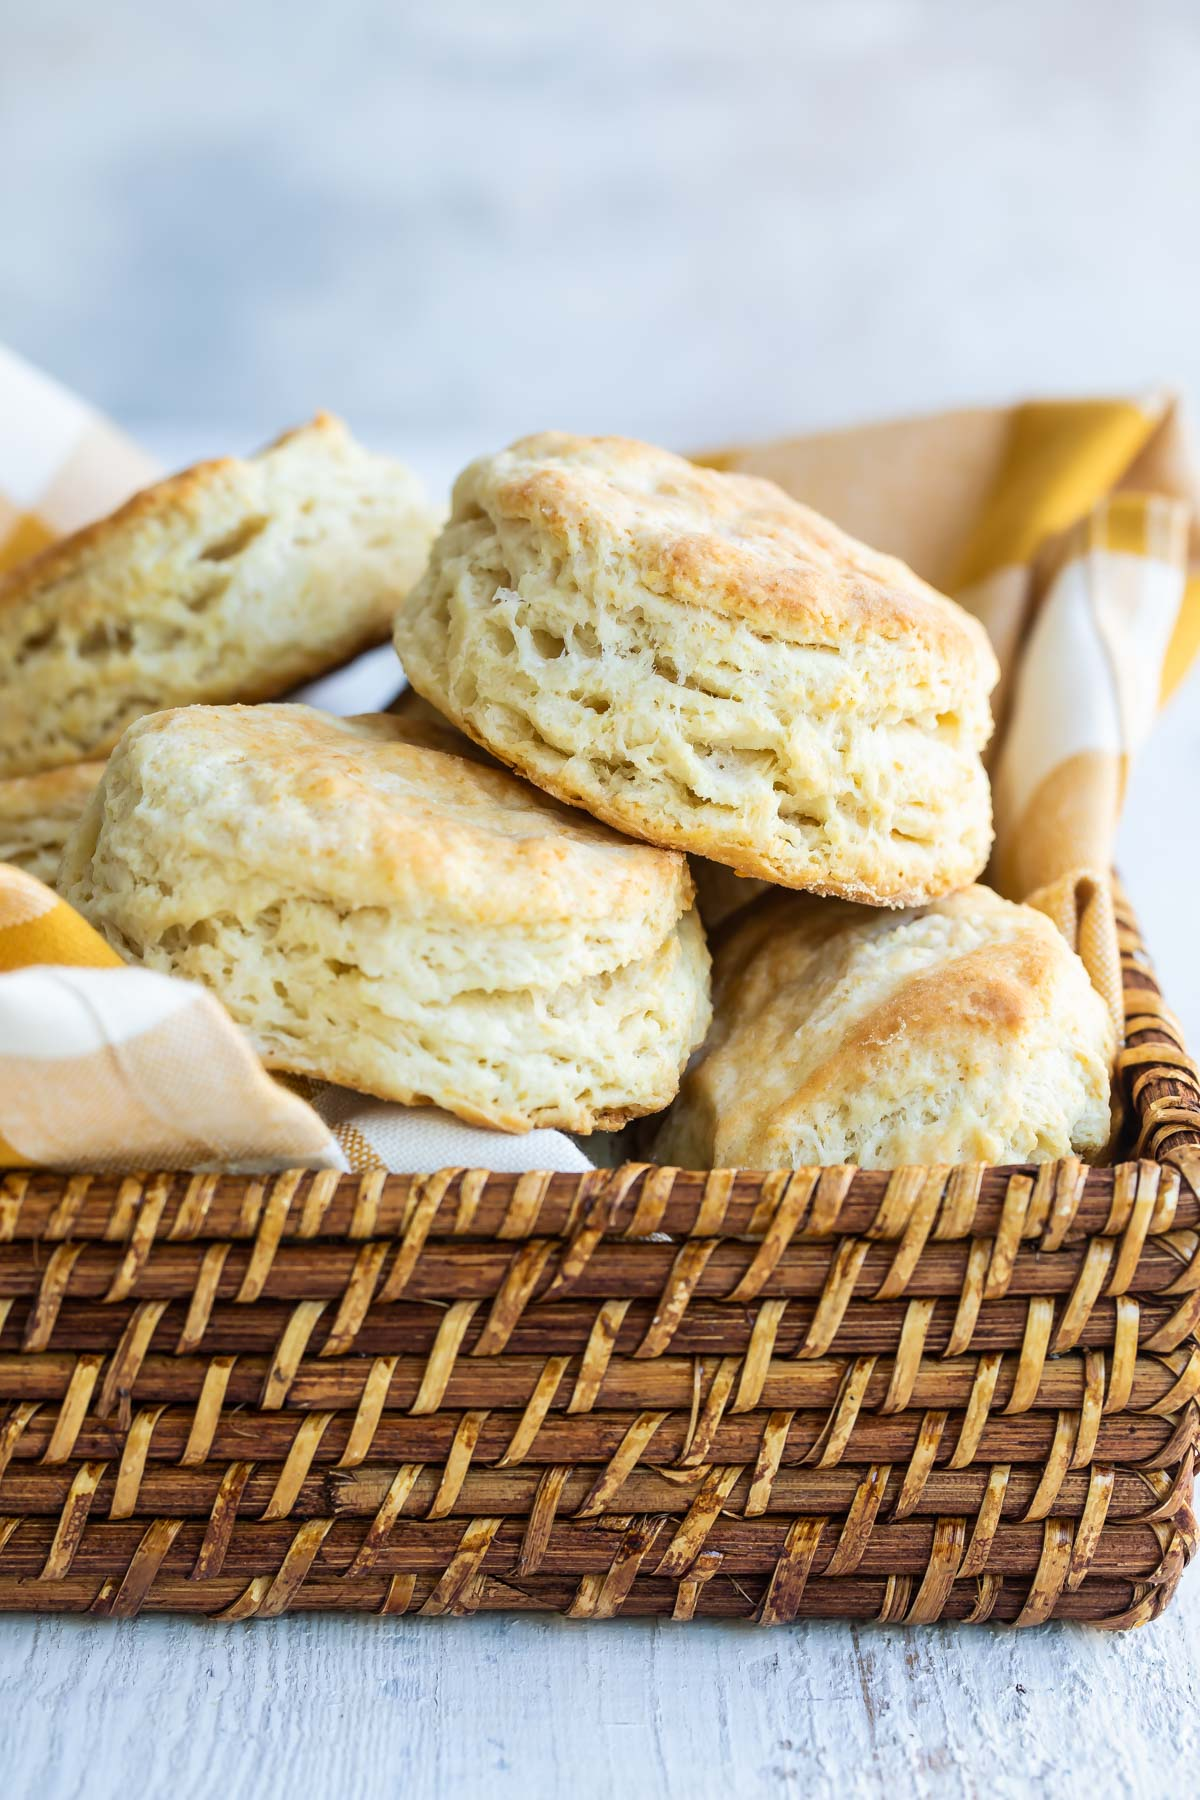 A basket of homemade biscuits.